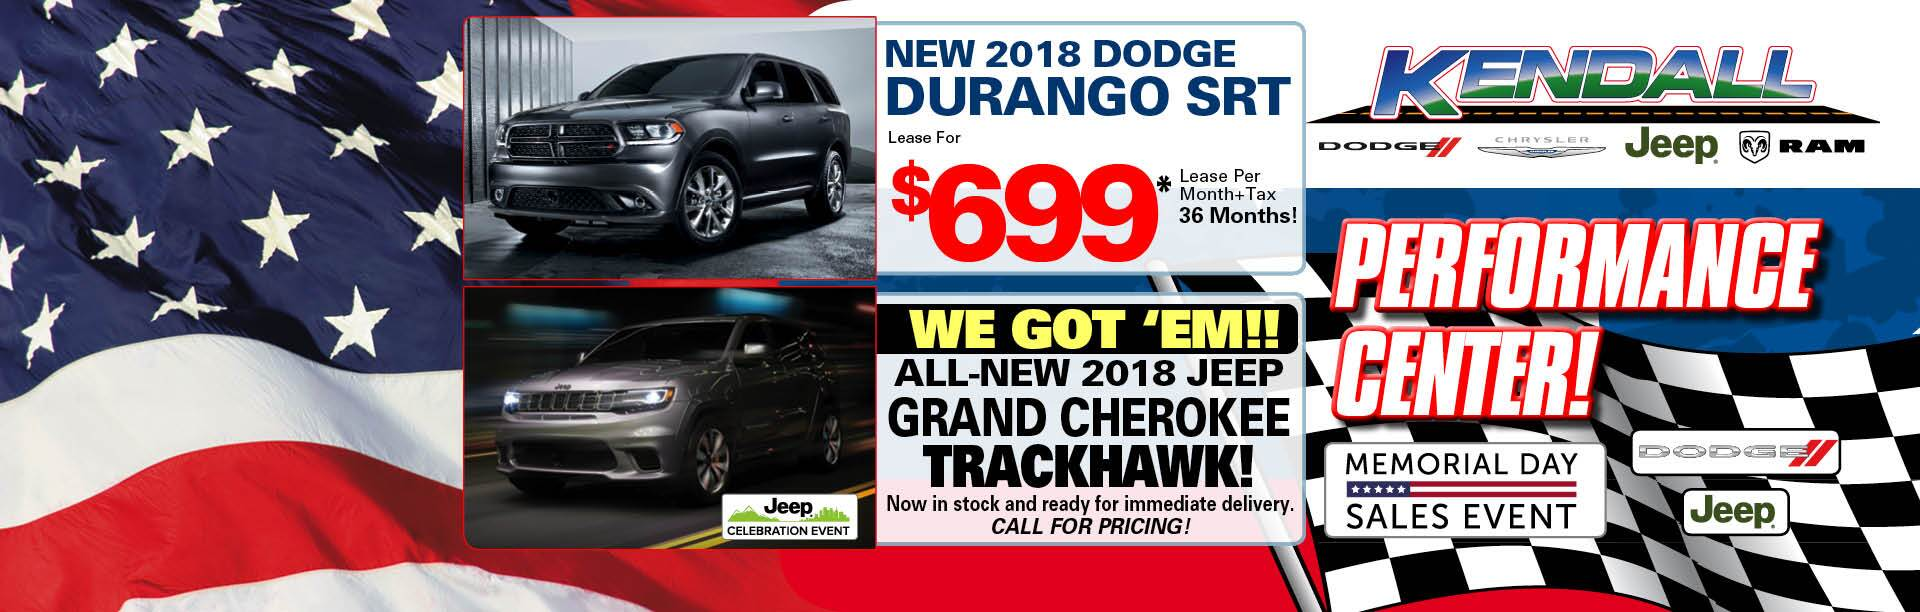 Dodge Performance Center - Durango/TrackHawk